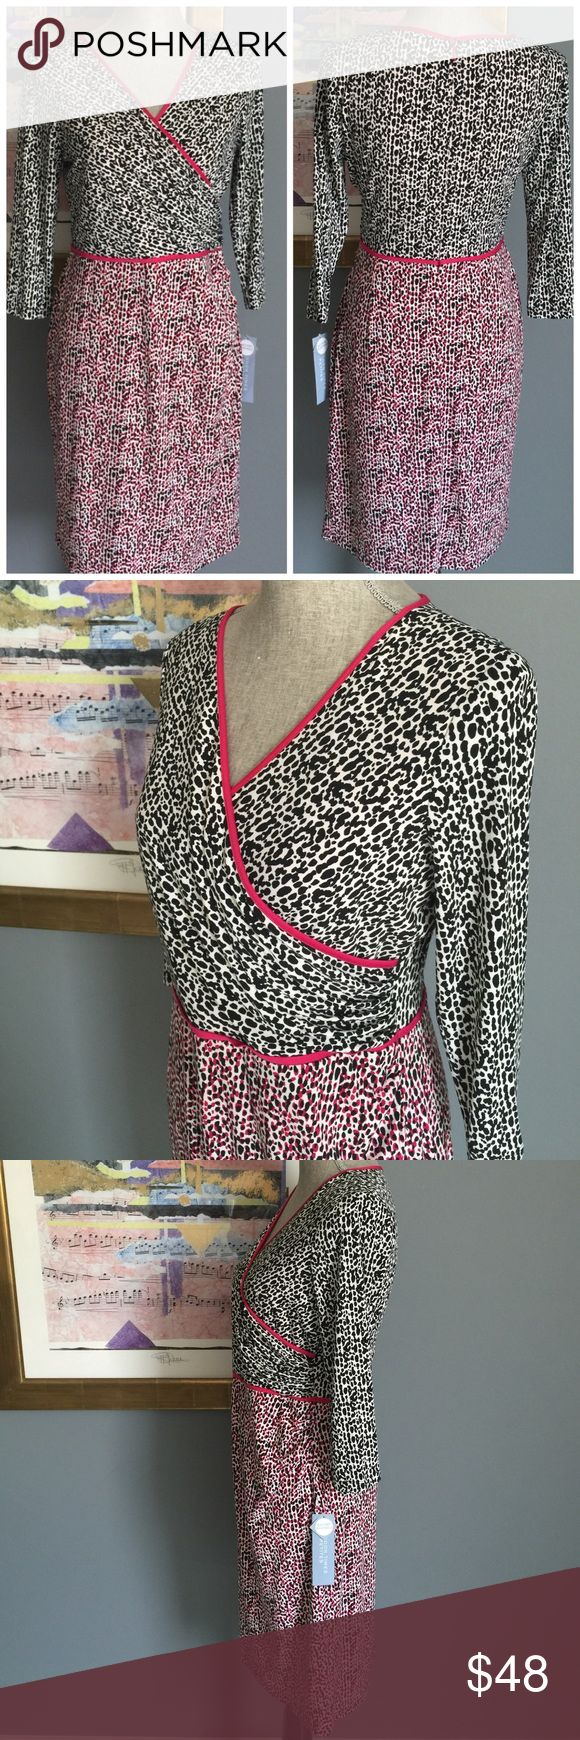 London Times Dress Gorgeous animal print dress from London Times .  Features a lined crossover top part , hidden back zipper , stretchy material .  Made of 95% polyester/5% spandex .  Machine washable . London Times Petite Dresses